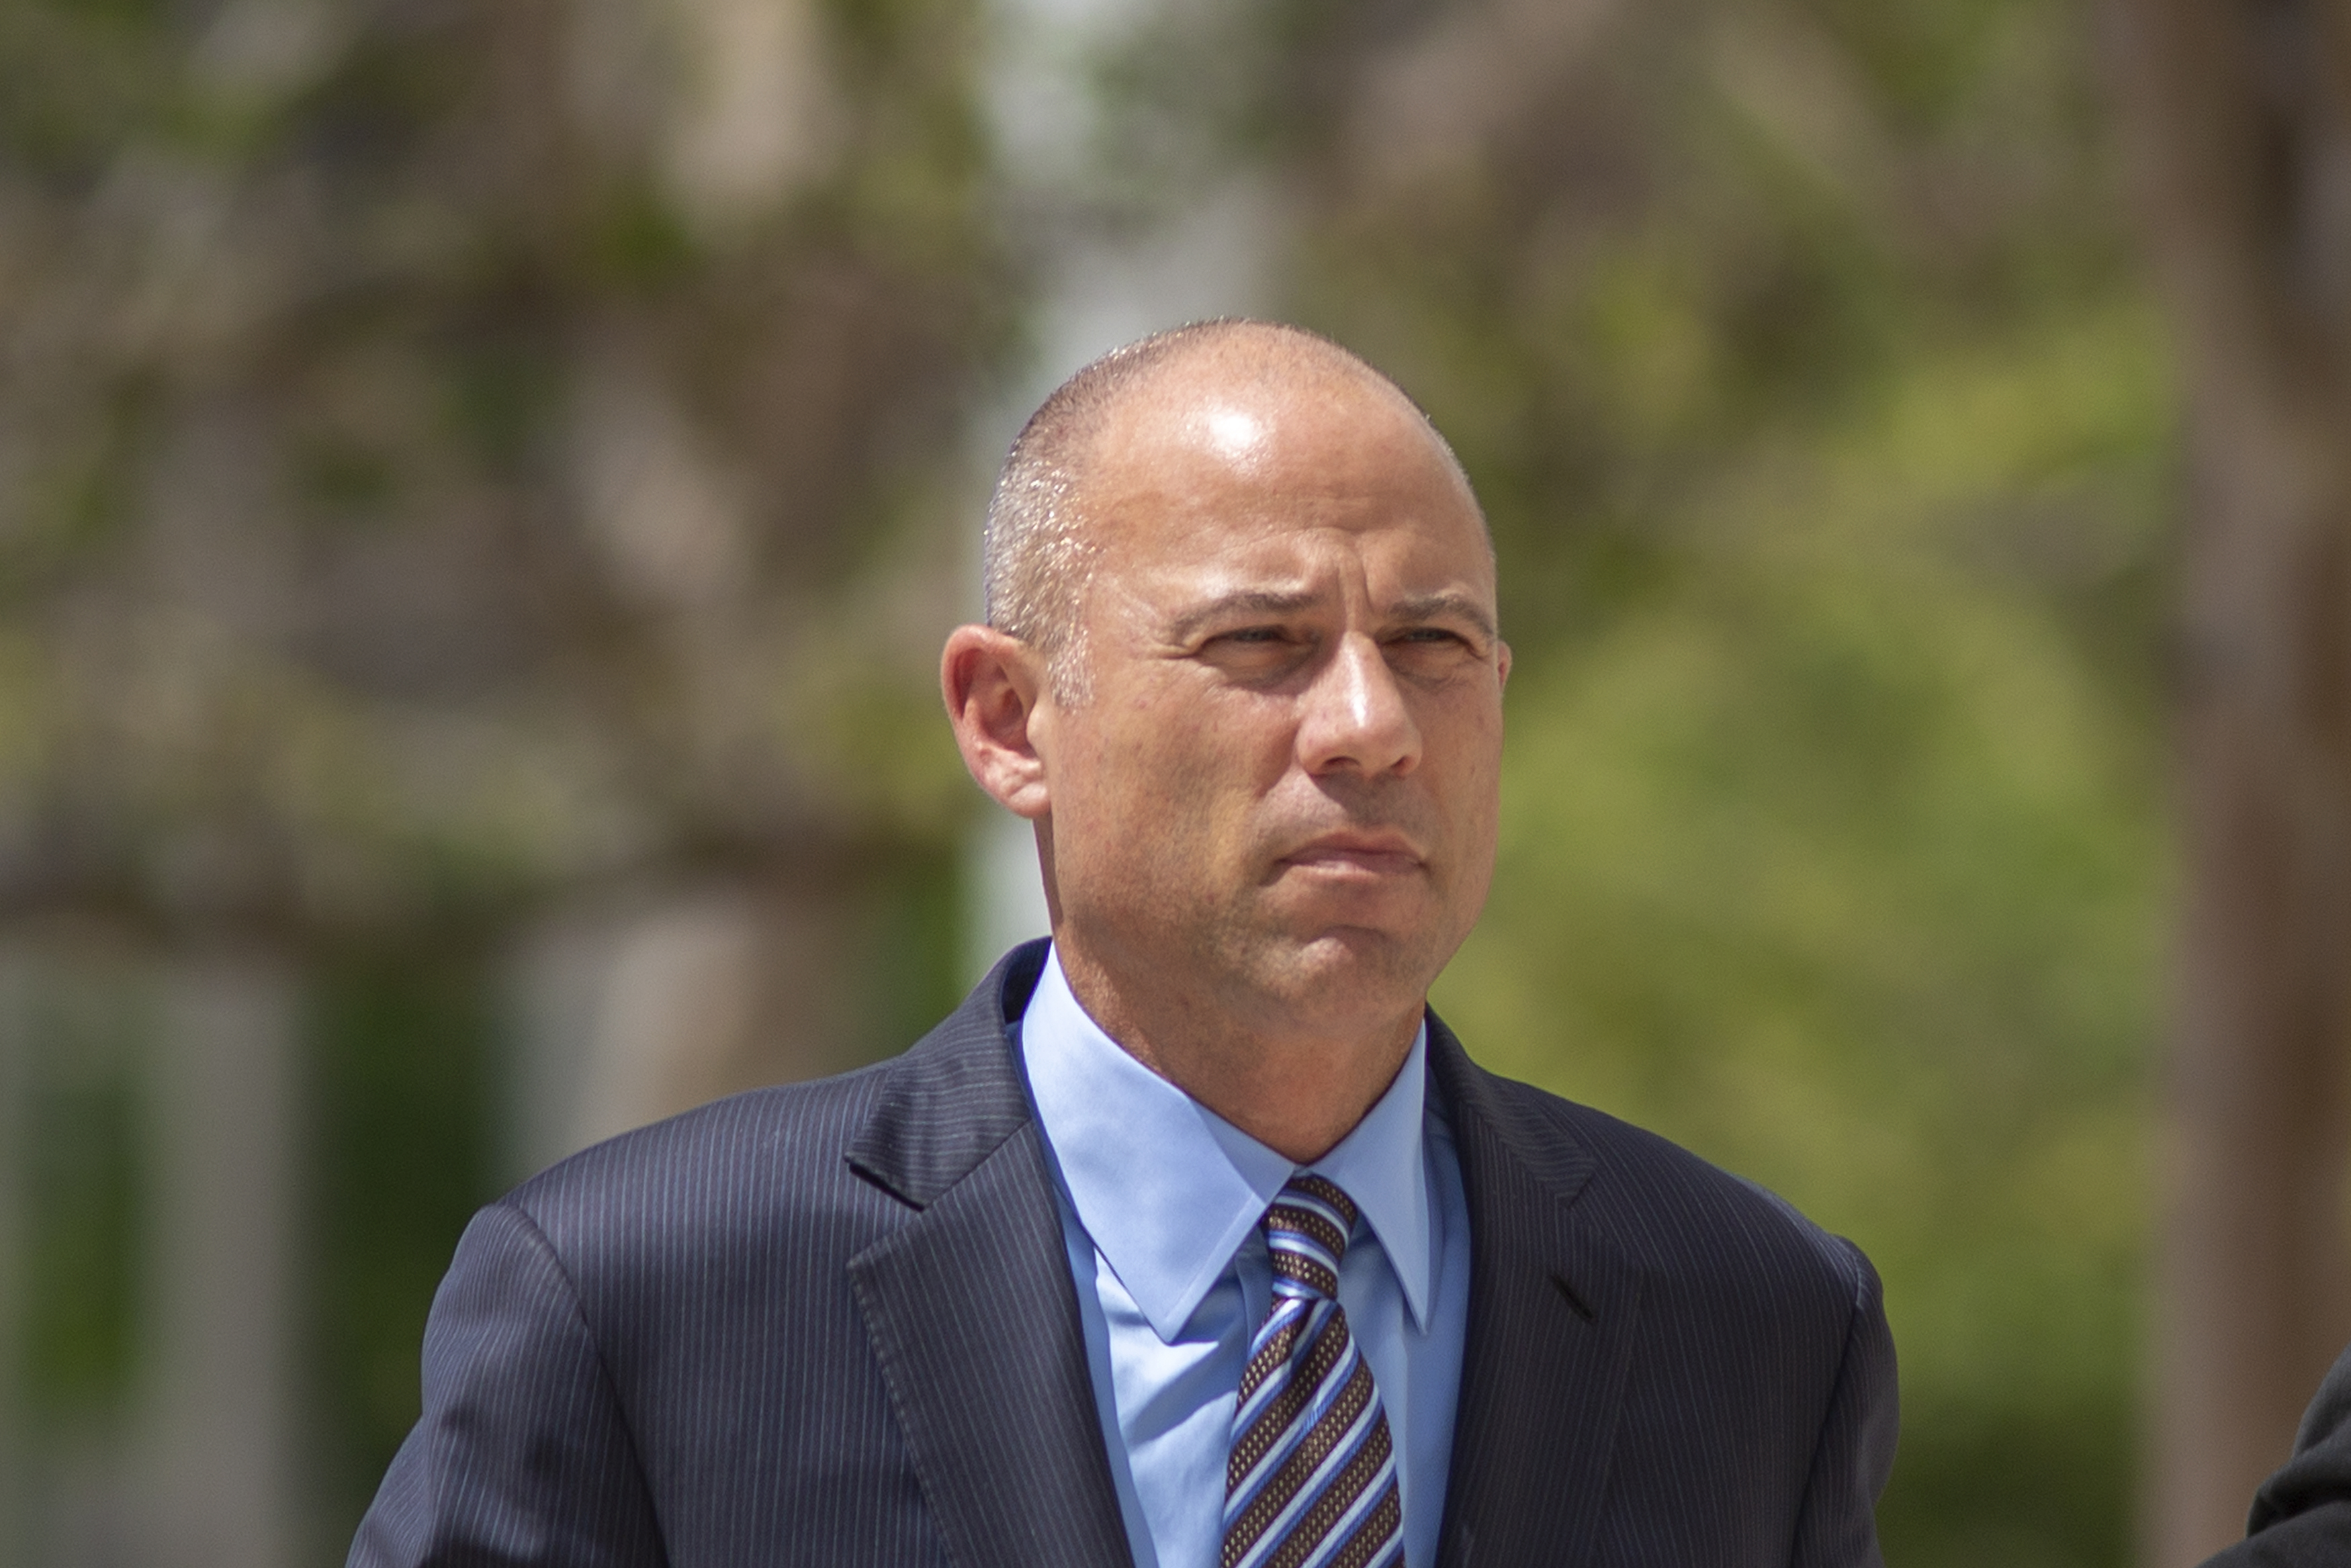 Michael Avenatti heads to trial for allegedly trying to extort millions of dollars from Nike